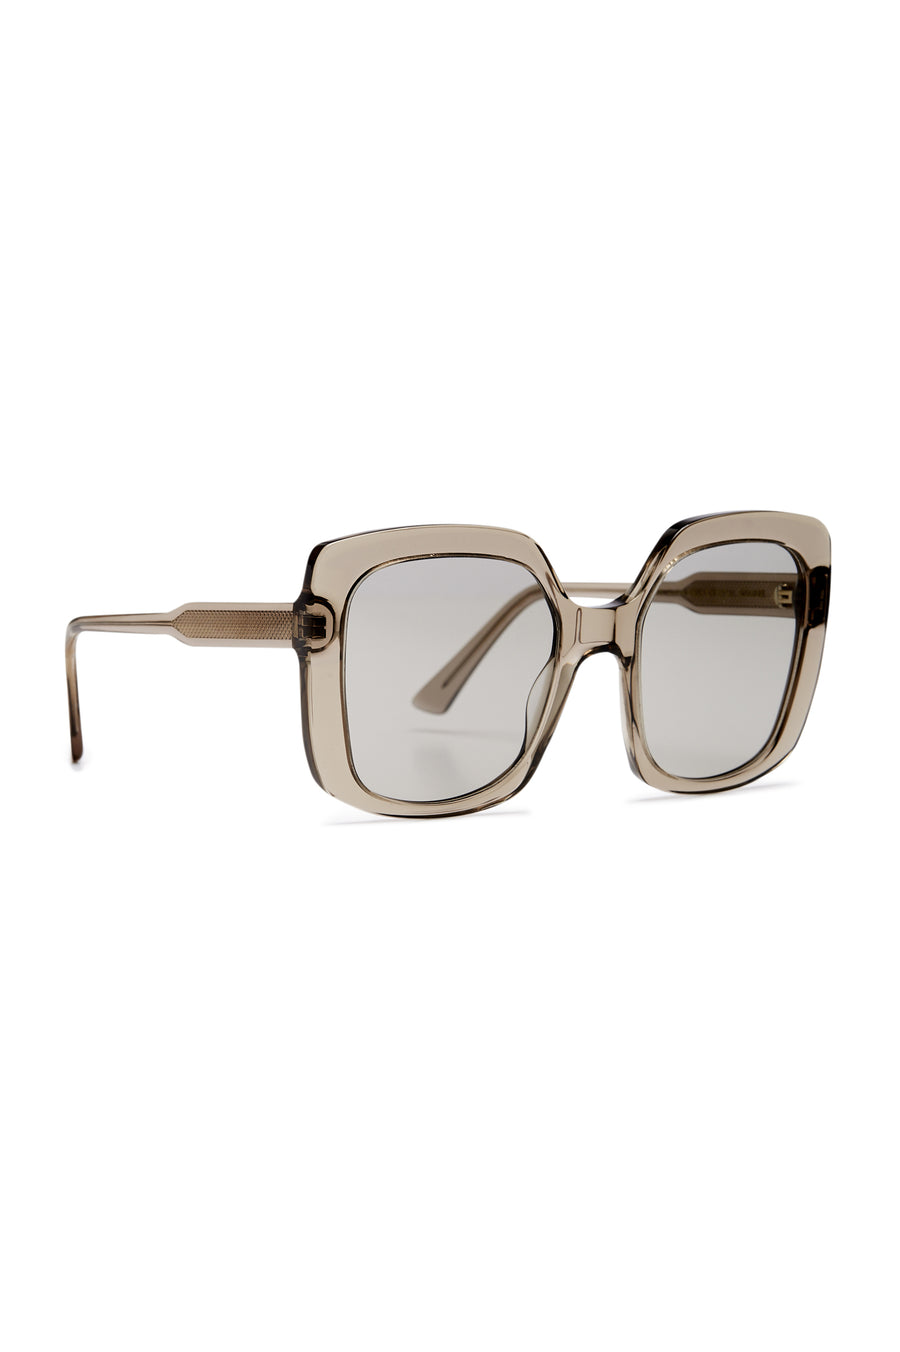 S T SQUARE SUNGLASSES GREY